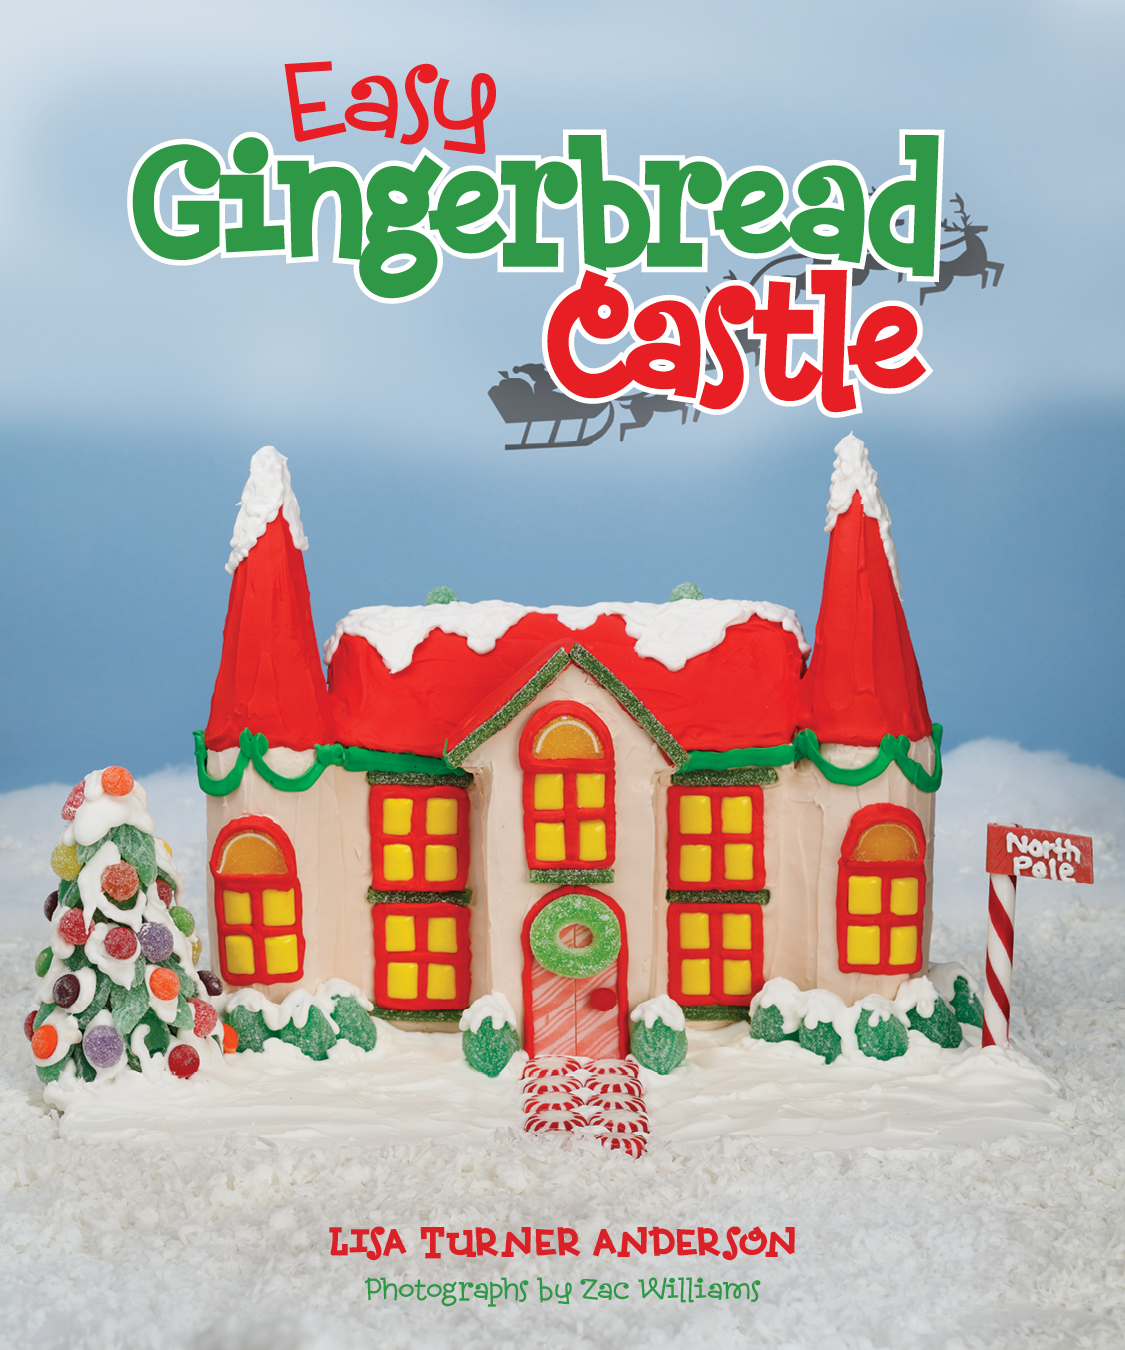 Easy Gingerbread Castle